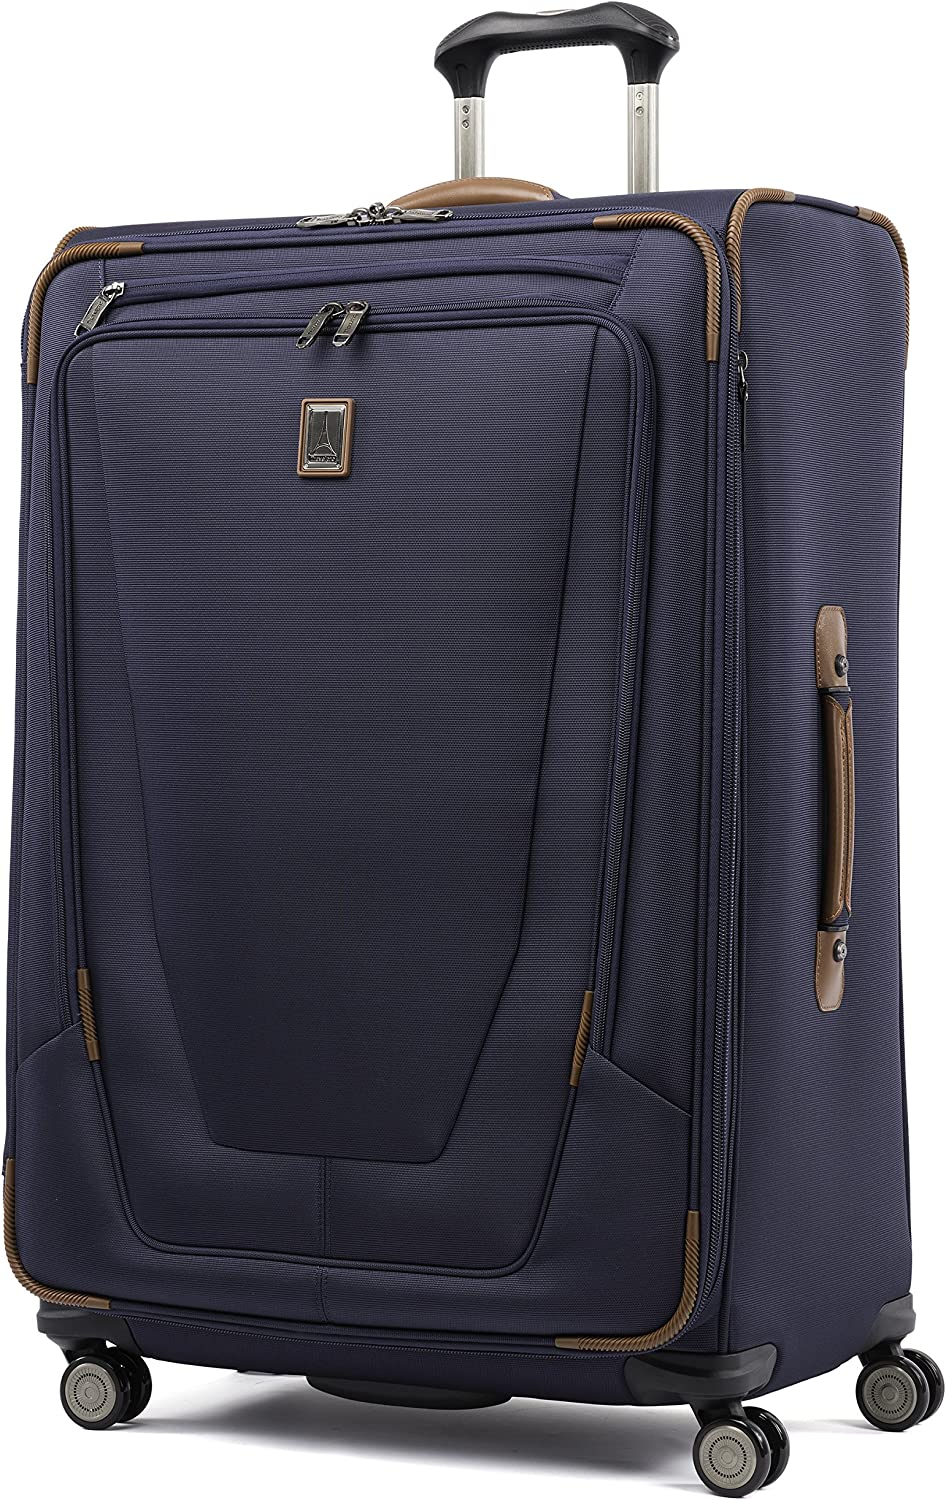 Travelpro Crew 11-Softside Expandable Luggage with Spinner Wheels, Patriot Blue, Checked-Large 29-Inch